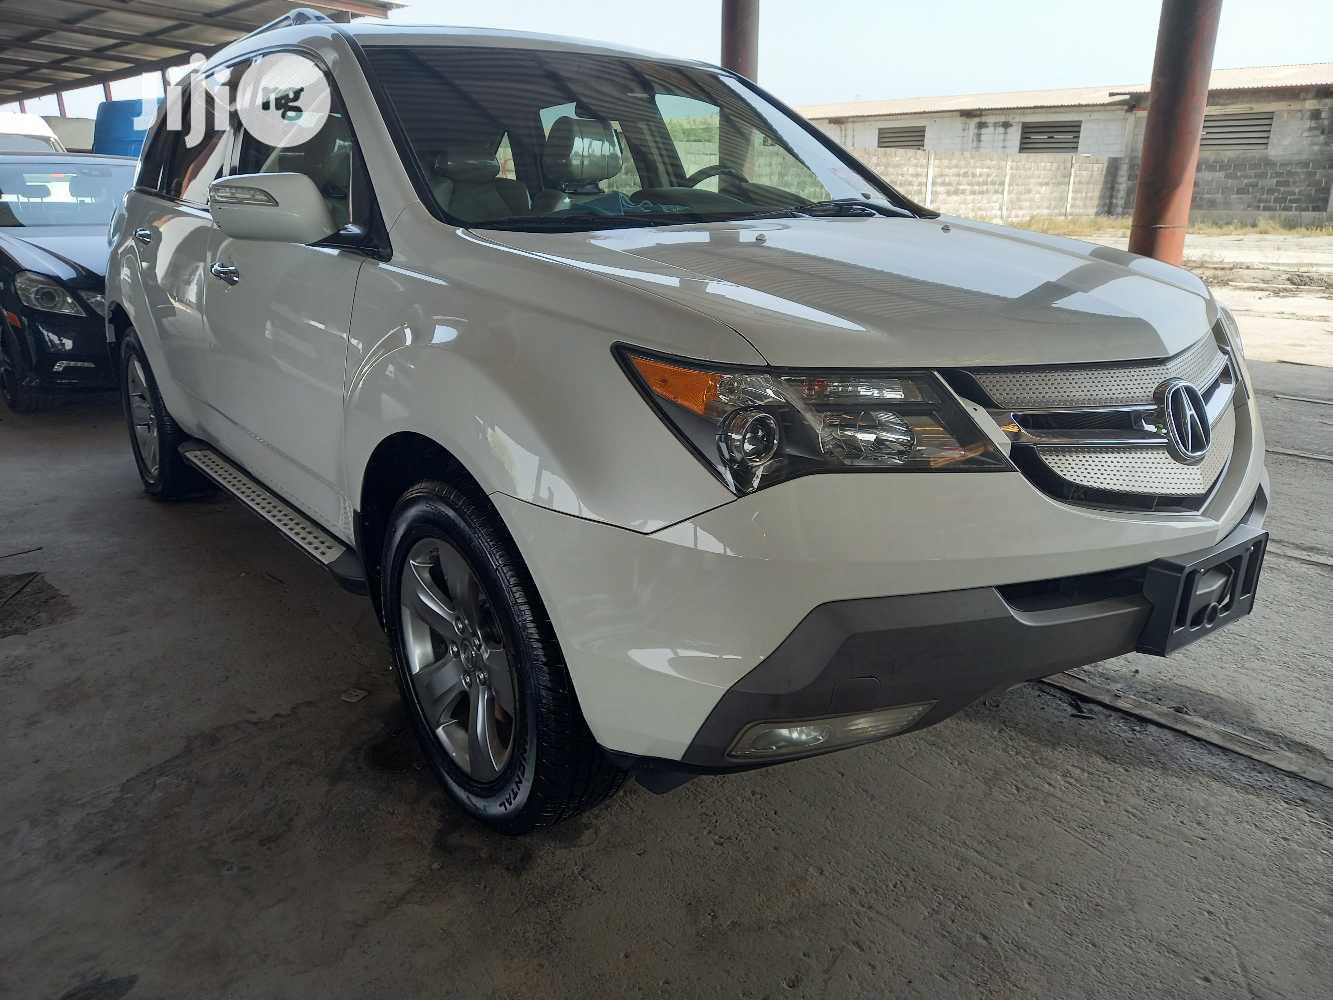 Acura MDX 2008 SUV 4dr AWD (3.7 6cyl 5A) White   Cars for sale in Apapa, Lagos State, Nigeria